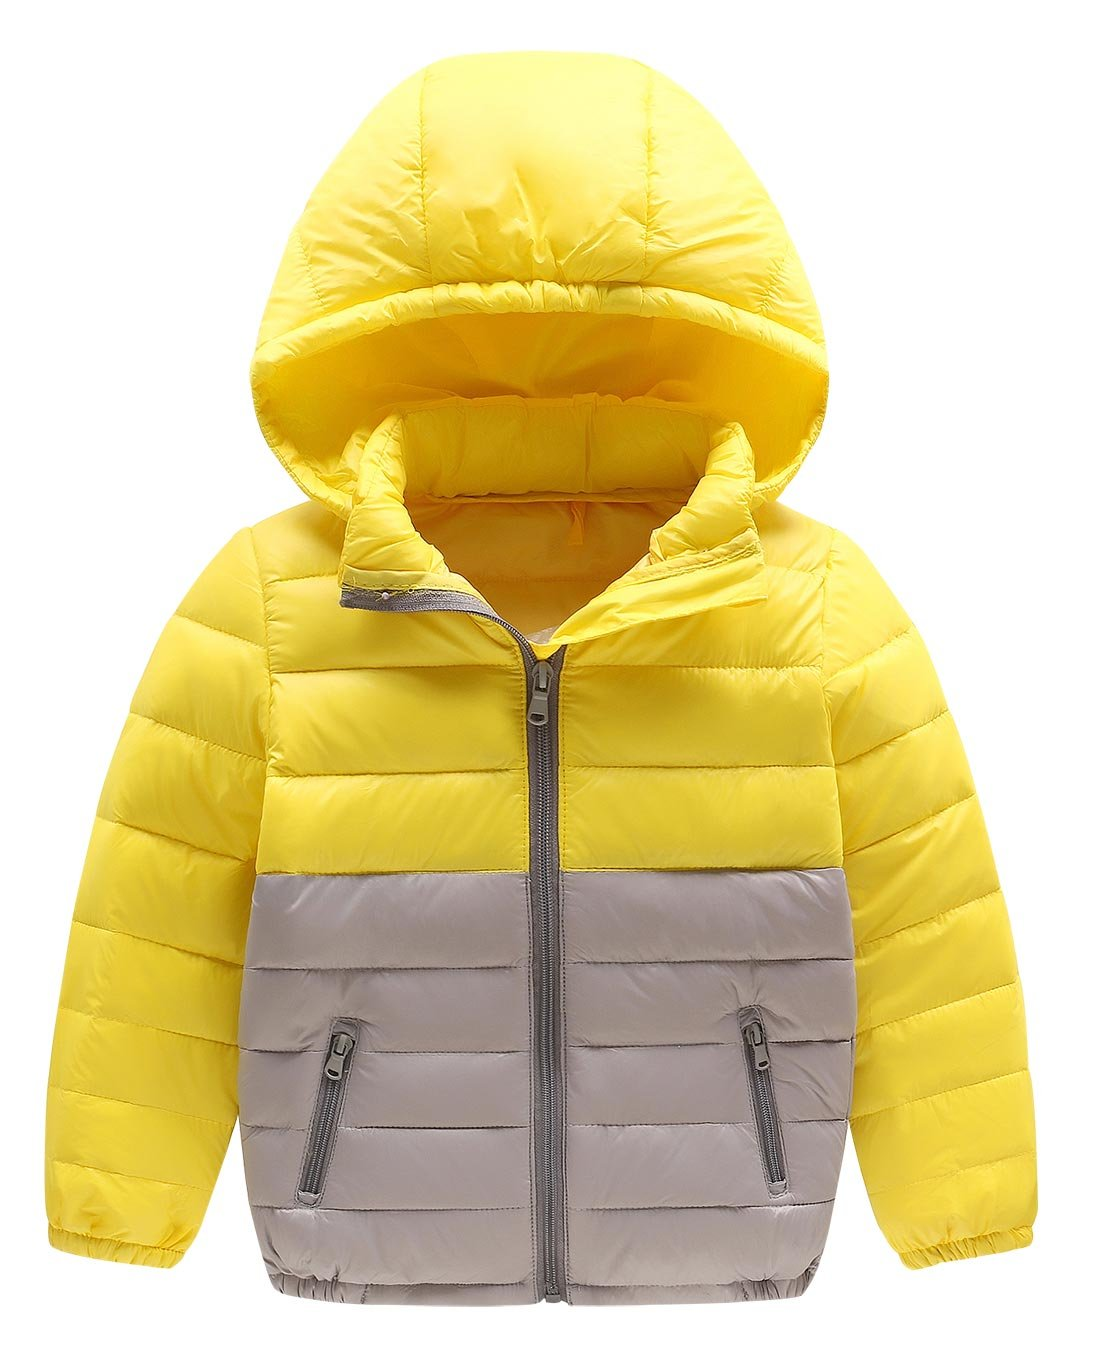 Happy Cherry Girls Winter Coat Packable Hoodie Short DownCoat Candy Color Windproof Puffer Jacket 5-6T Yellow